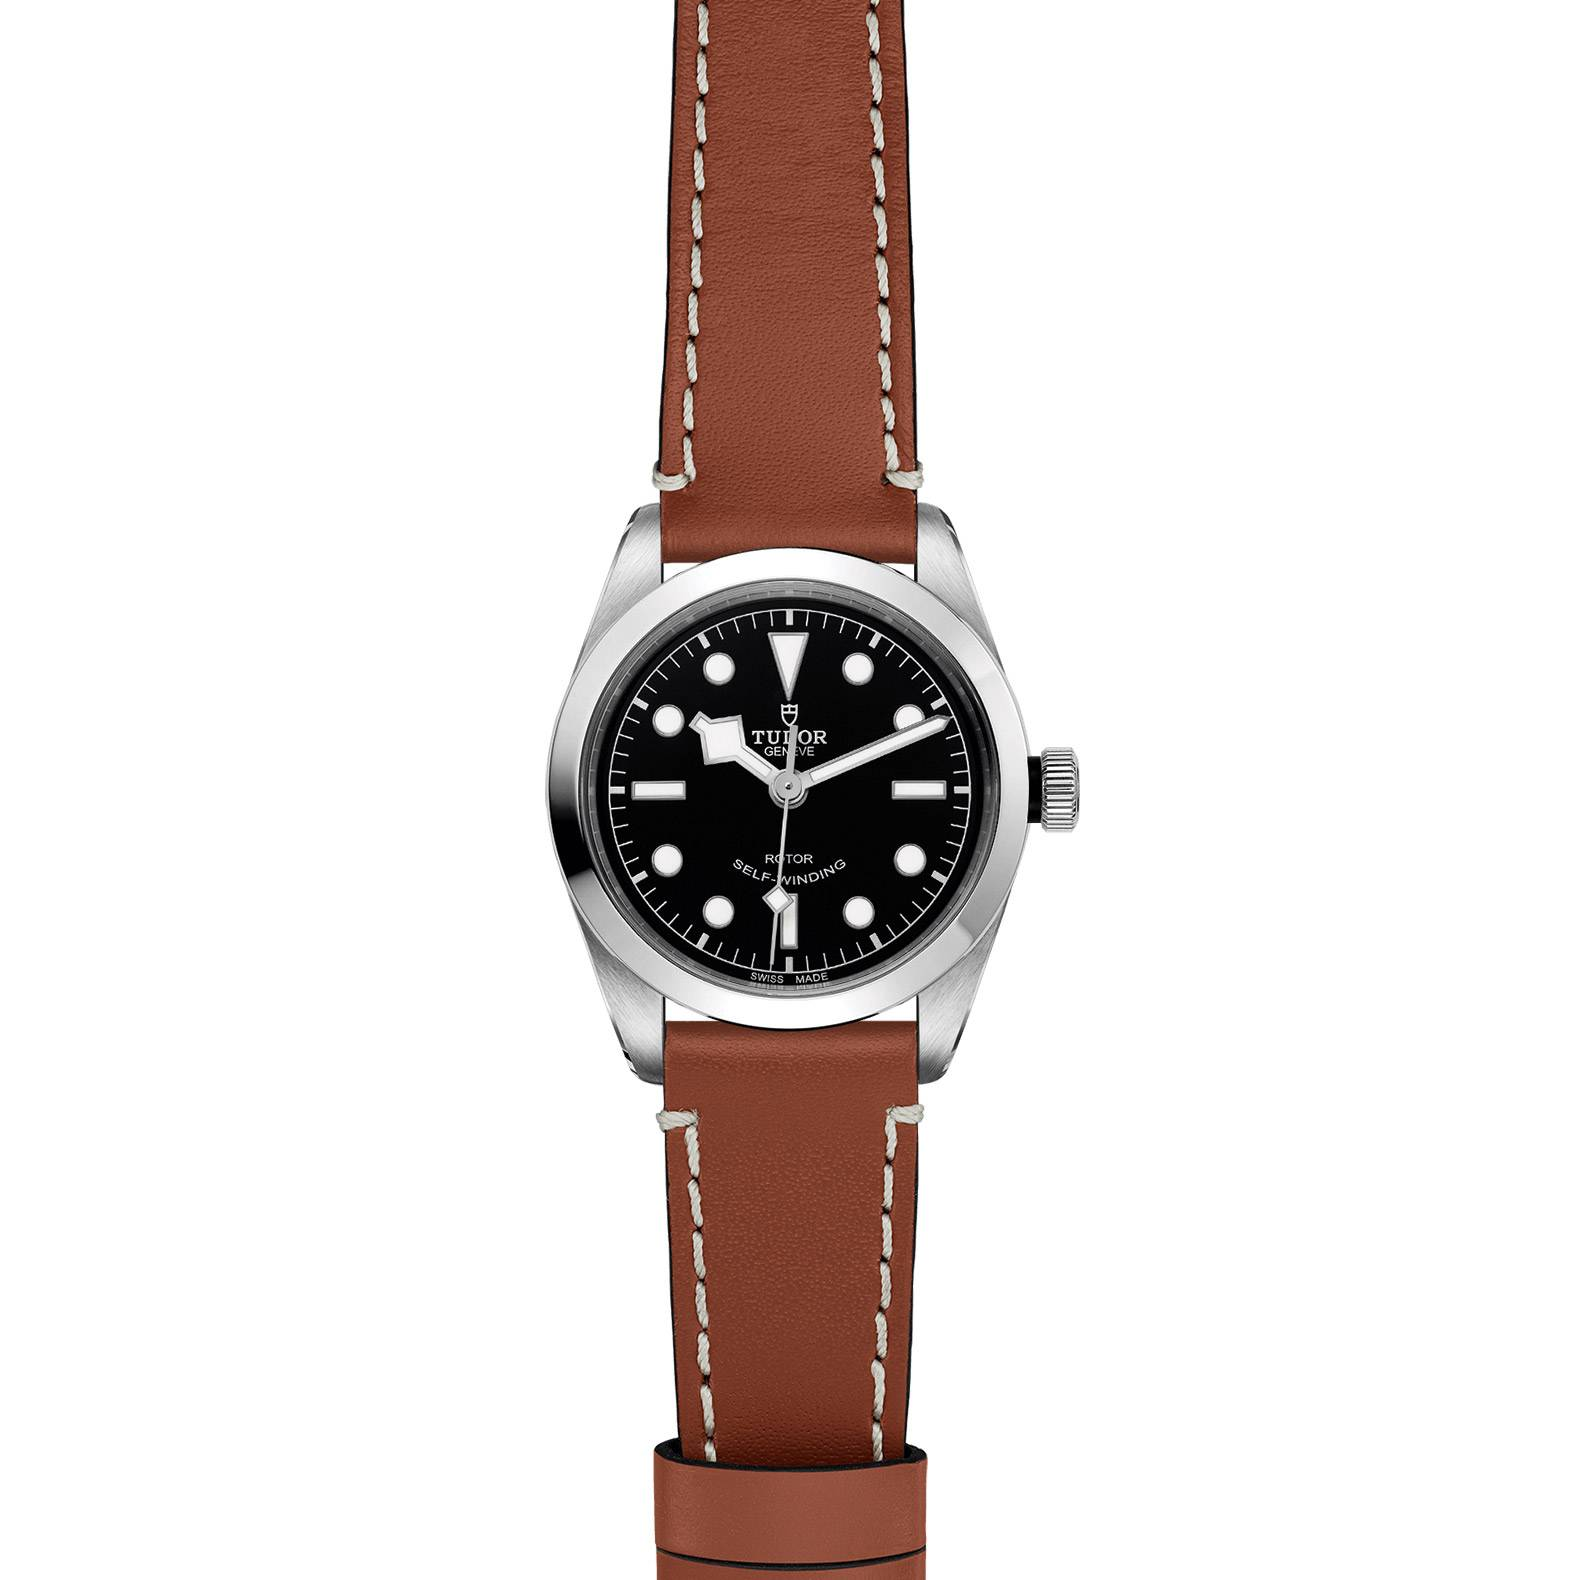 Tudor Black Bay 32 / 36 / 41 M79500-0009